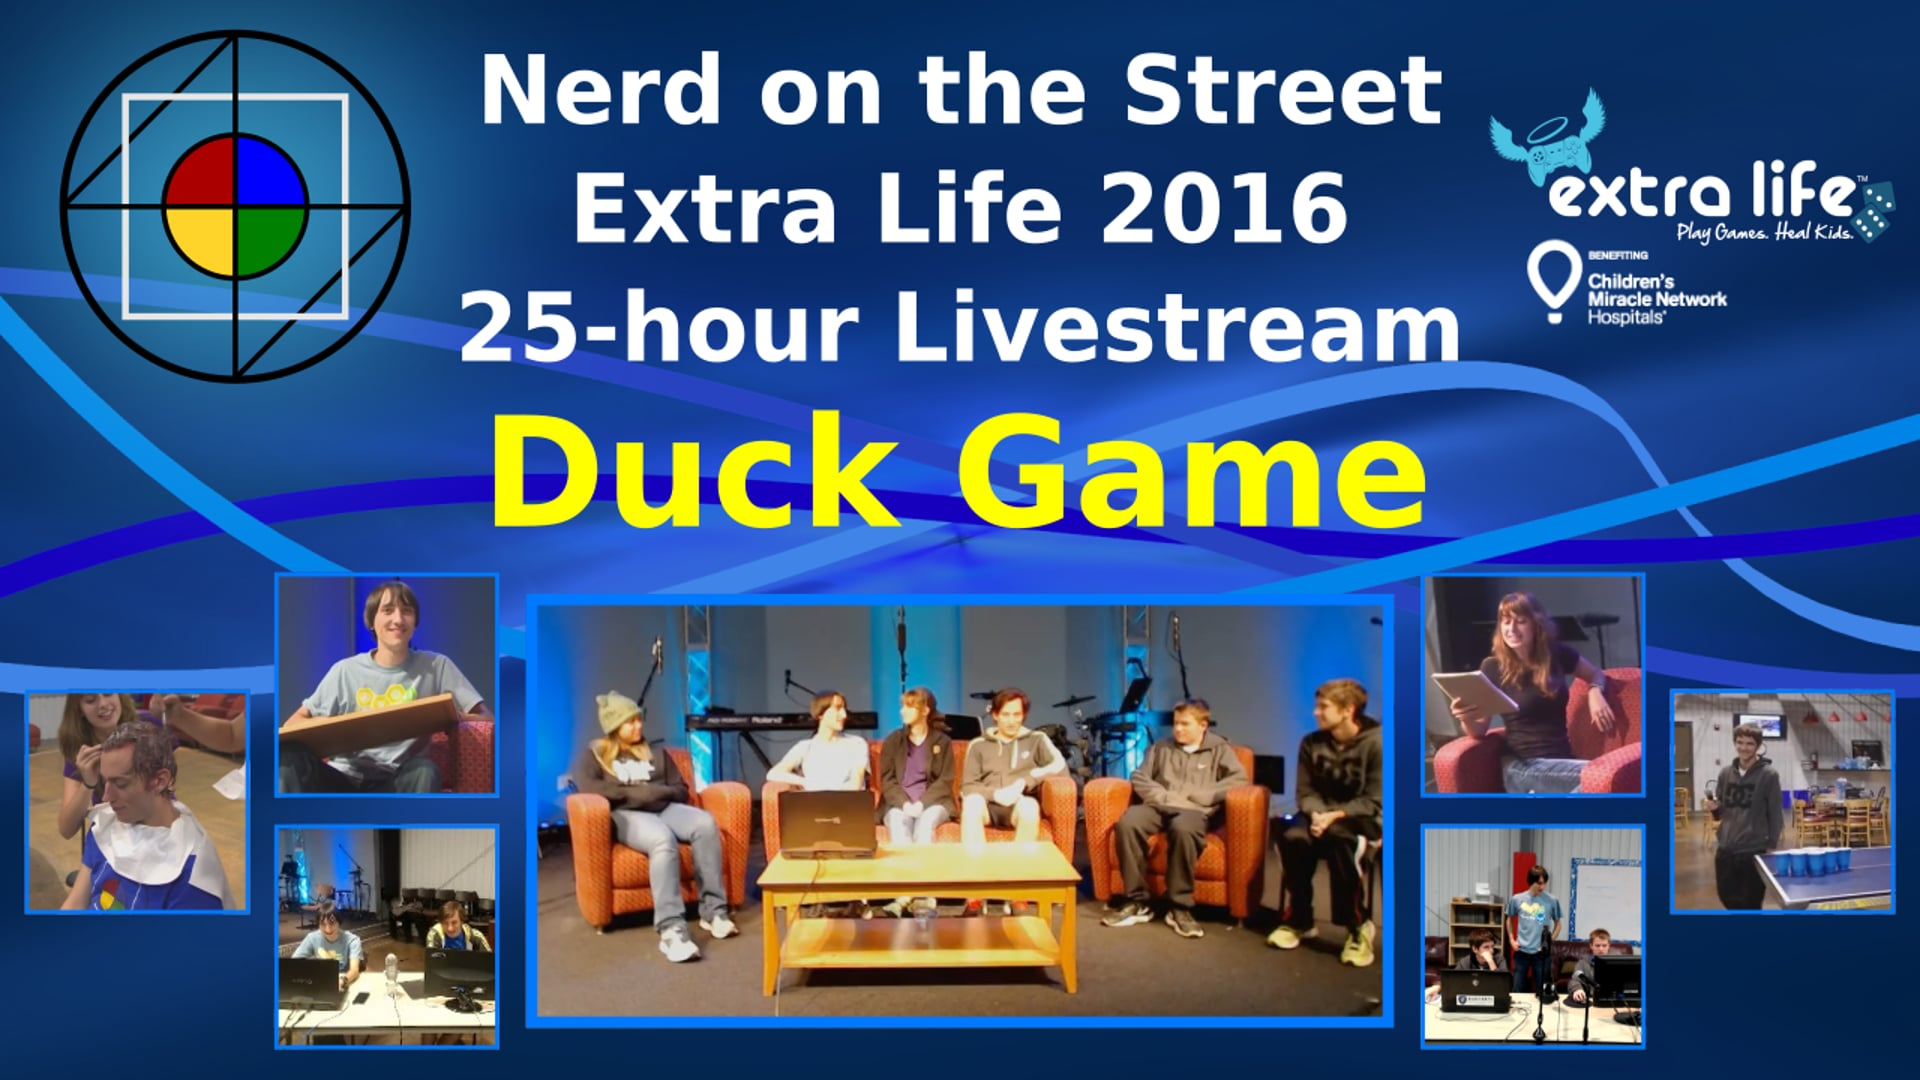 Duck Game - Extra Life 2016